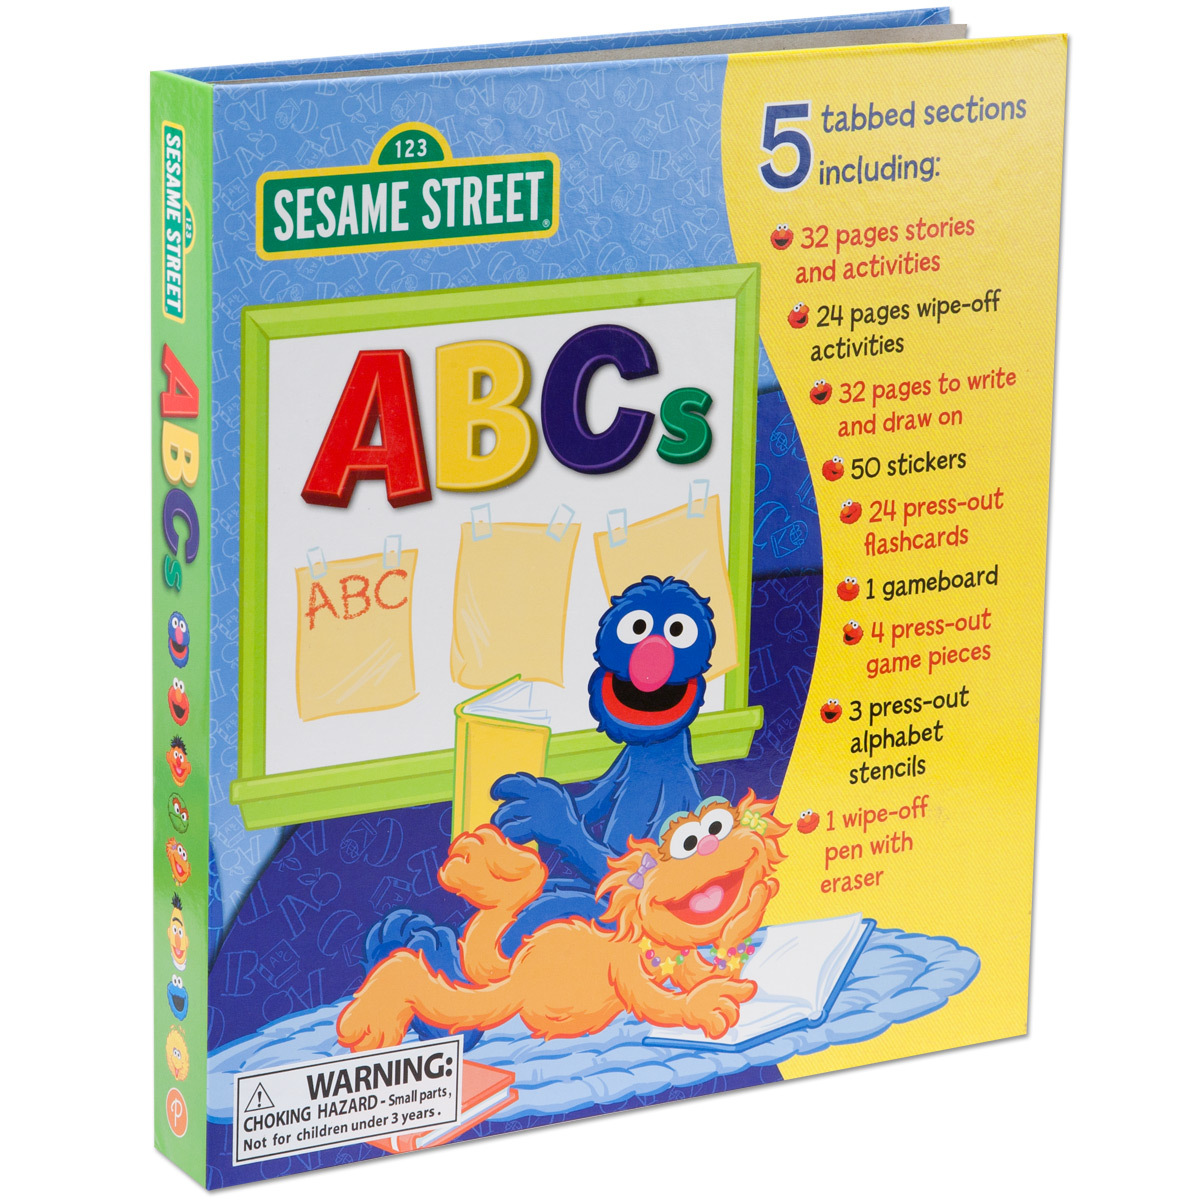 Sesame Street ABCs Activity Center Book